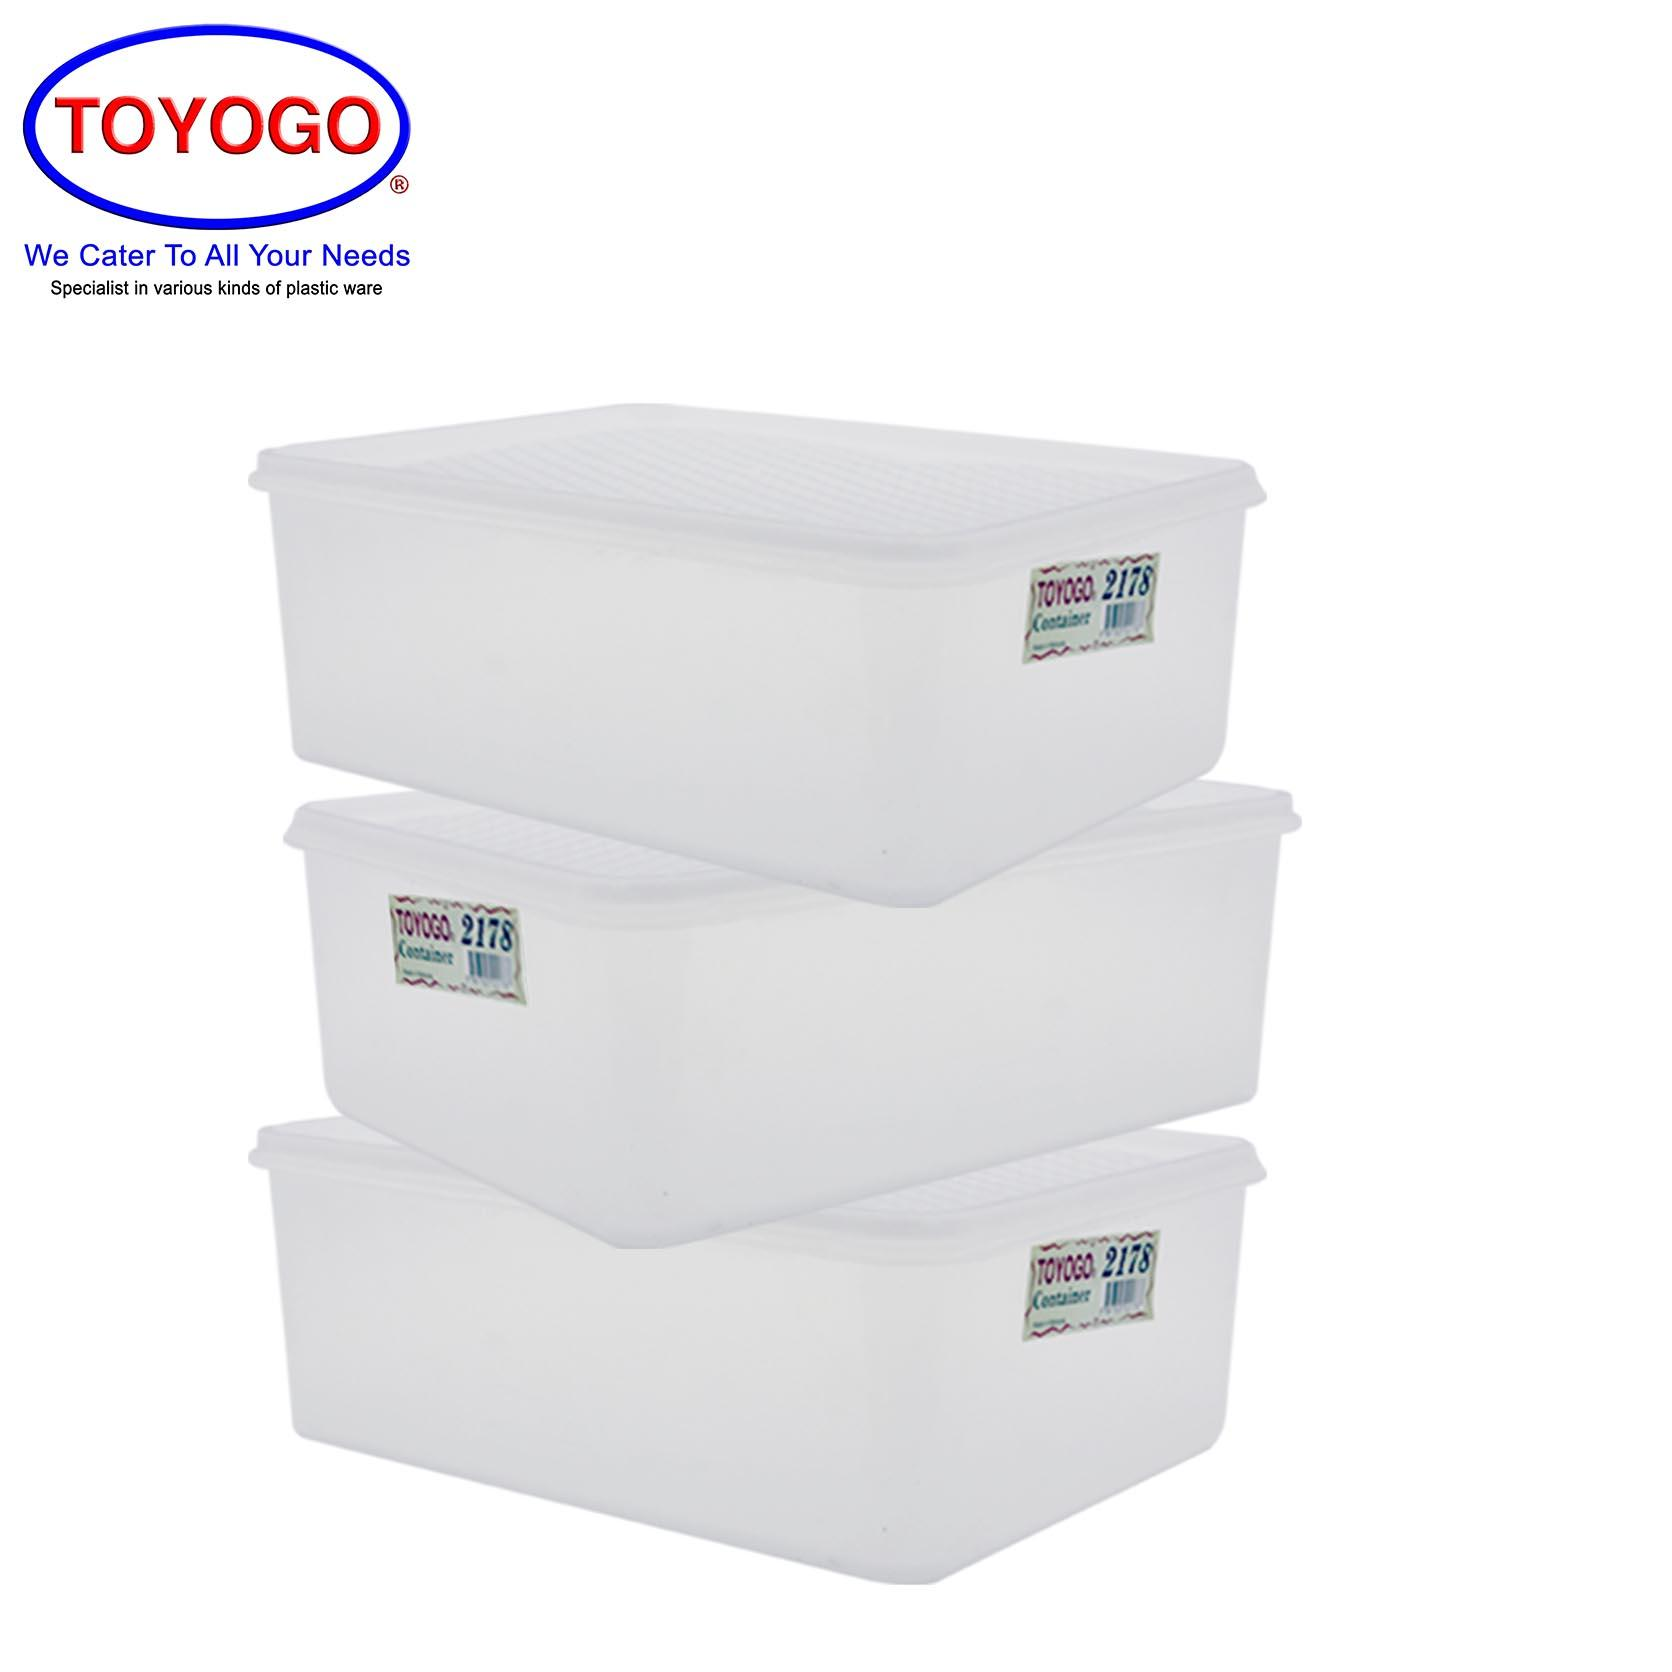 Toyogo Rectangular Box (Bundle of 3) (2178)